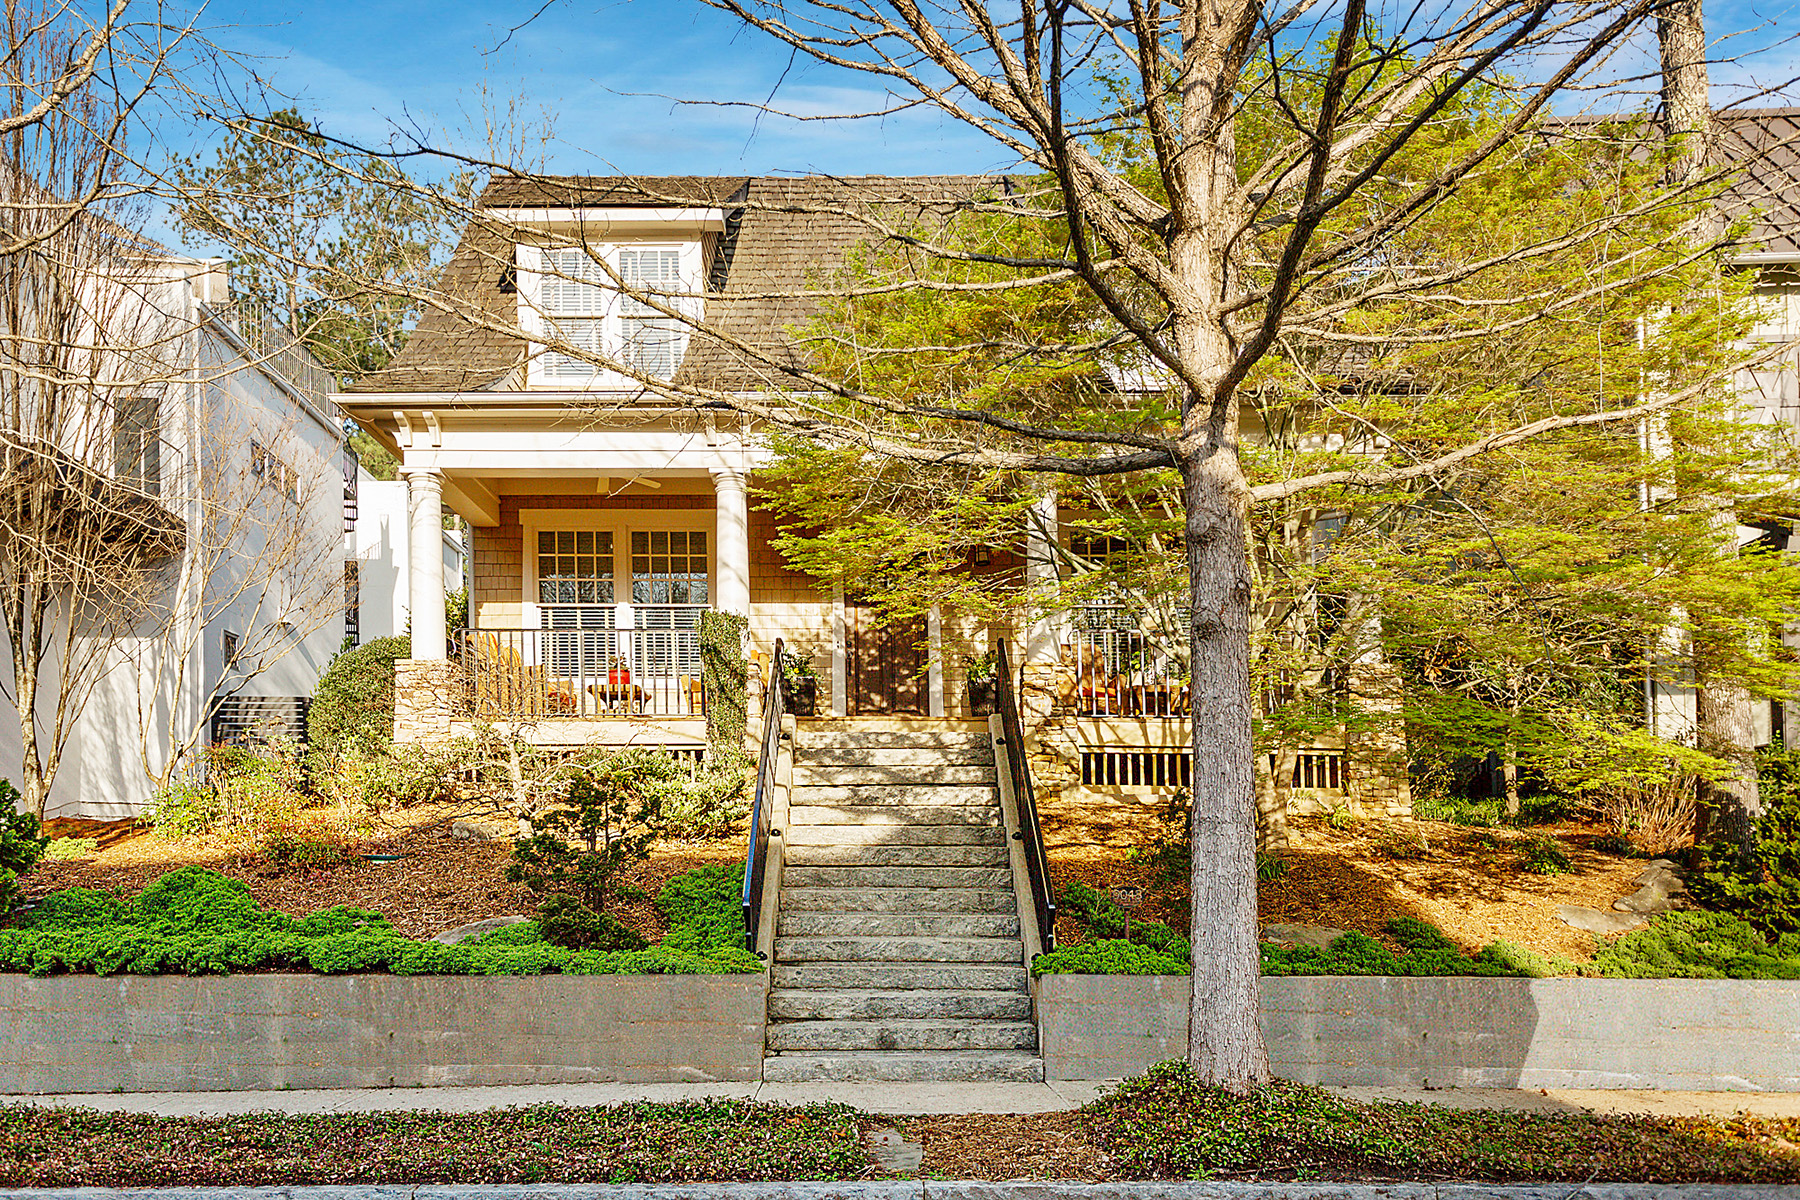 Single Family Homes for Sale at Craftsman Style Home in Original Section of Serenbe Community 9048 Selborne Lane Chattahoochee Hills, Georgia 30268 United States